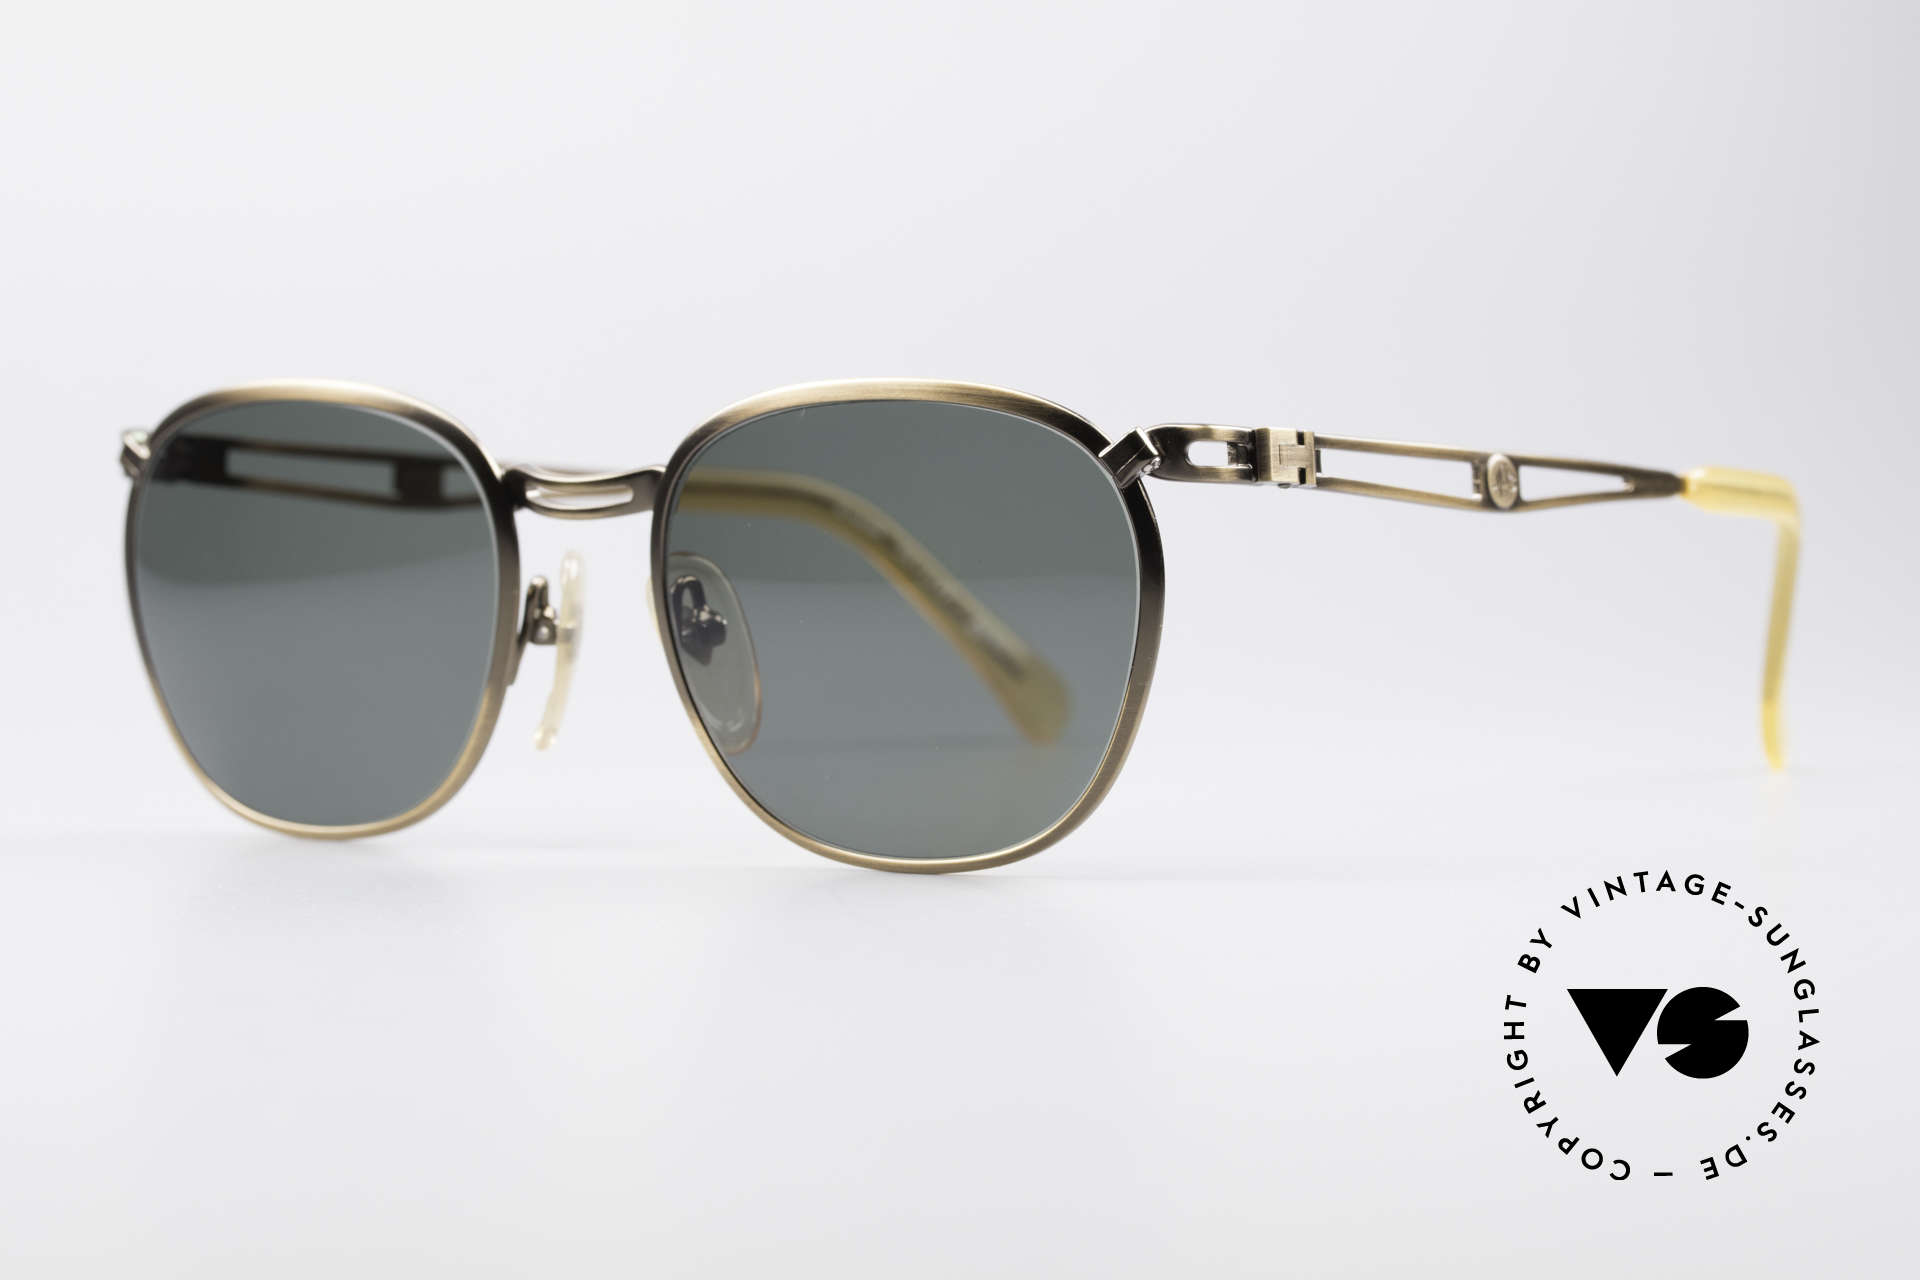 Jean Paul Gaultier 56-2177 90's Designer Sunglasses, but high-end quality (monolithic), typically JPG!, Made for Men and Women